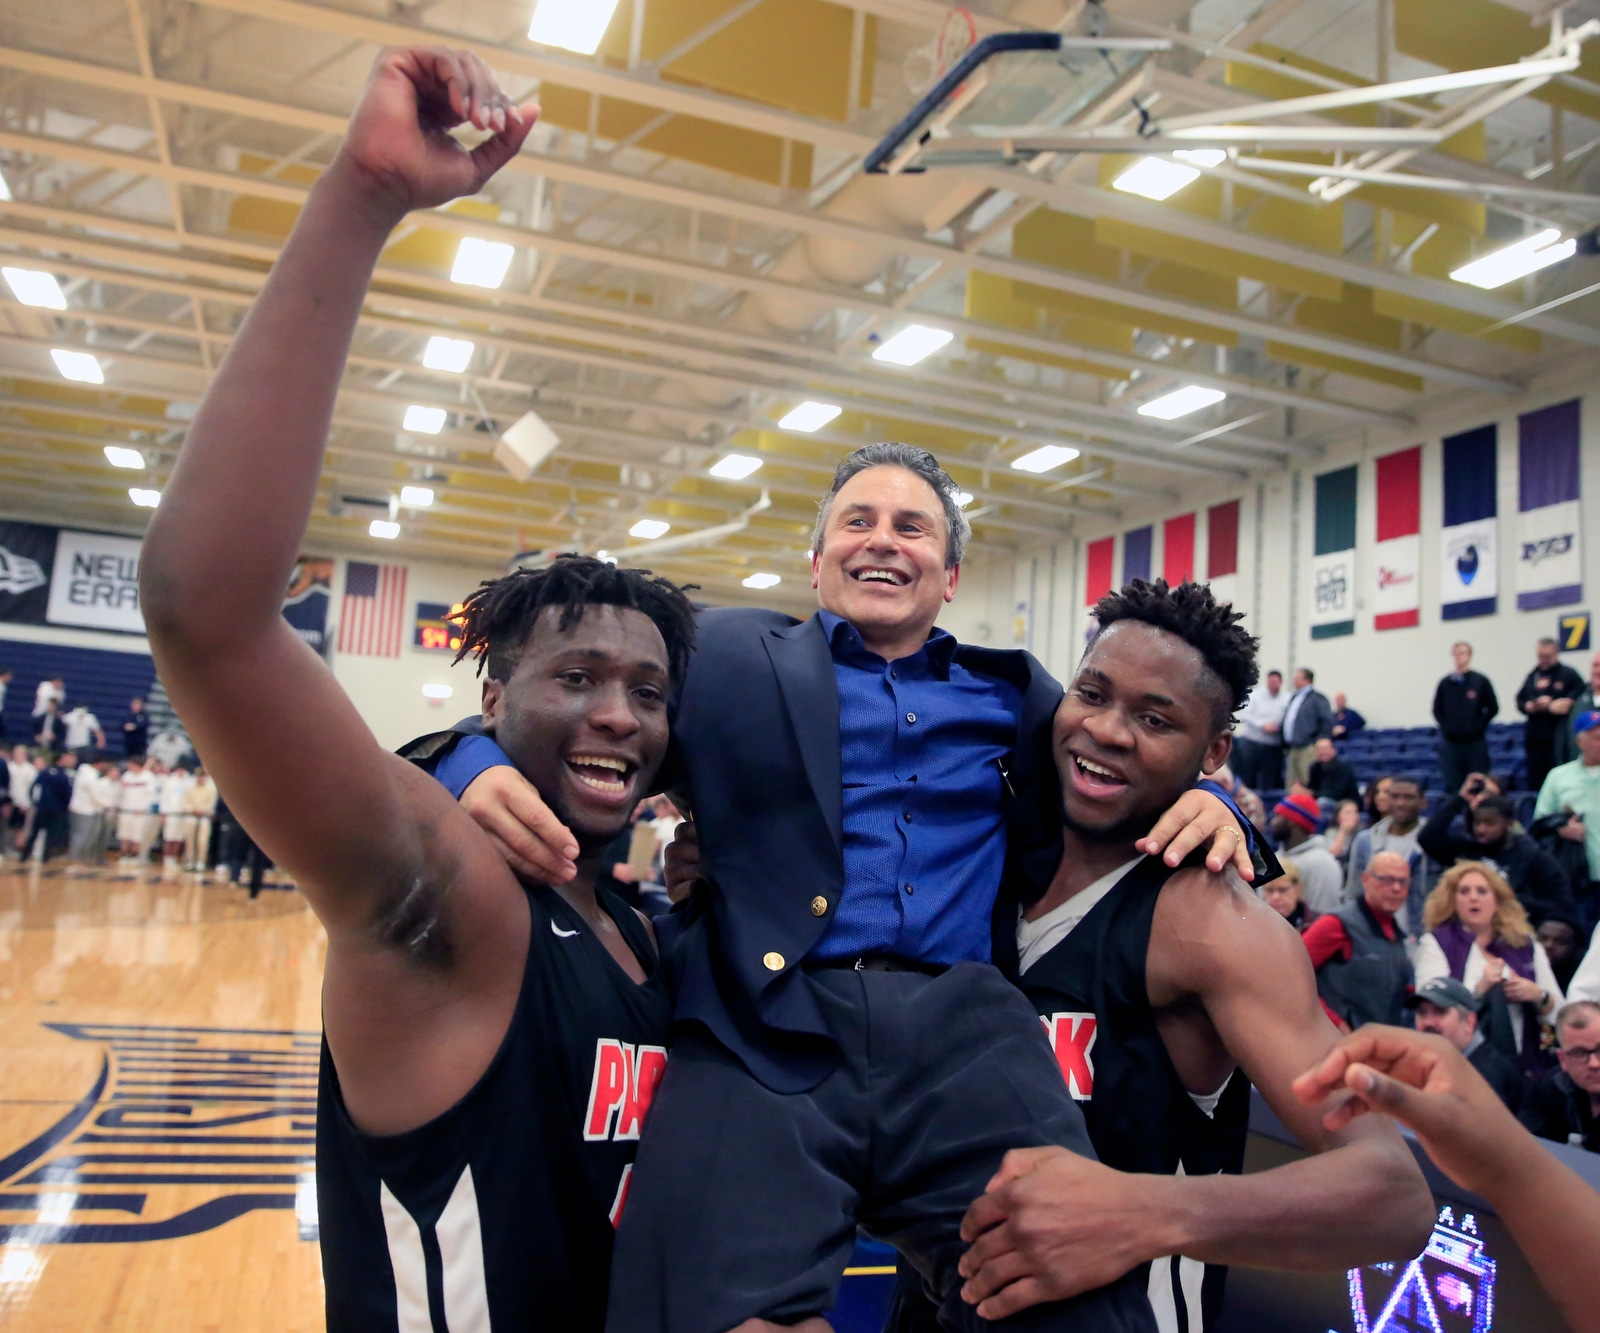 Park player Julian Eziukwu and Quentin Nnagbo lift head coach Rich Jacob in the air after defeating Canisius, 62-54, in the Class A final at the Koessler Center on Tuesday, Feb. 27, 2018.